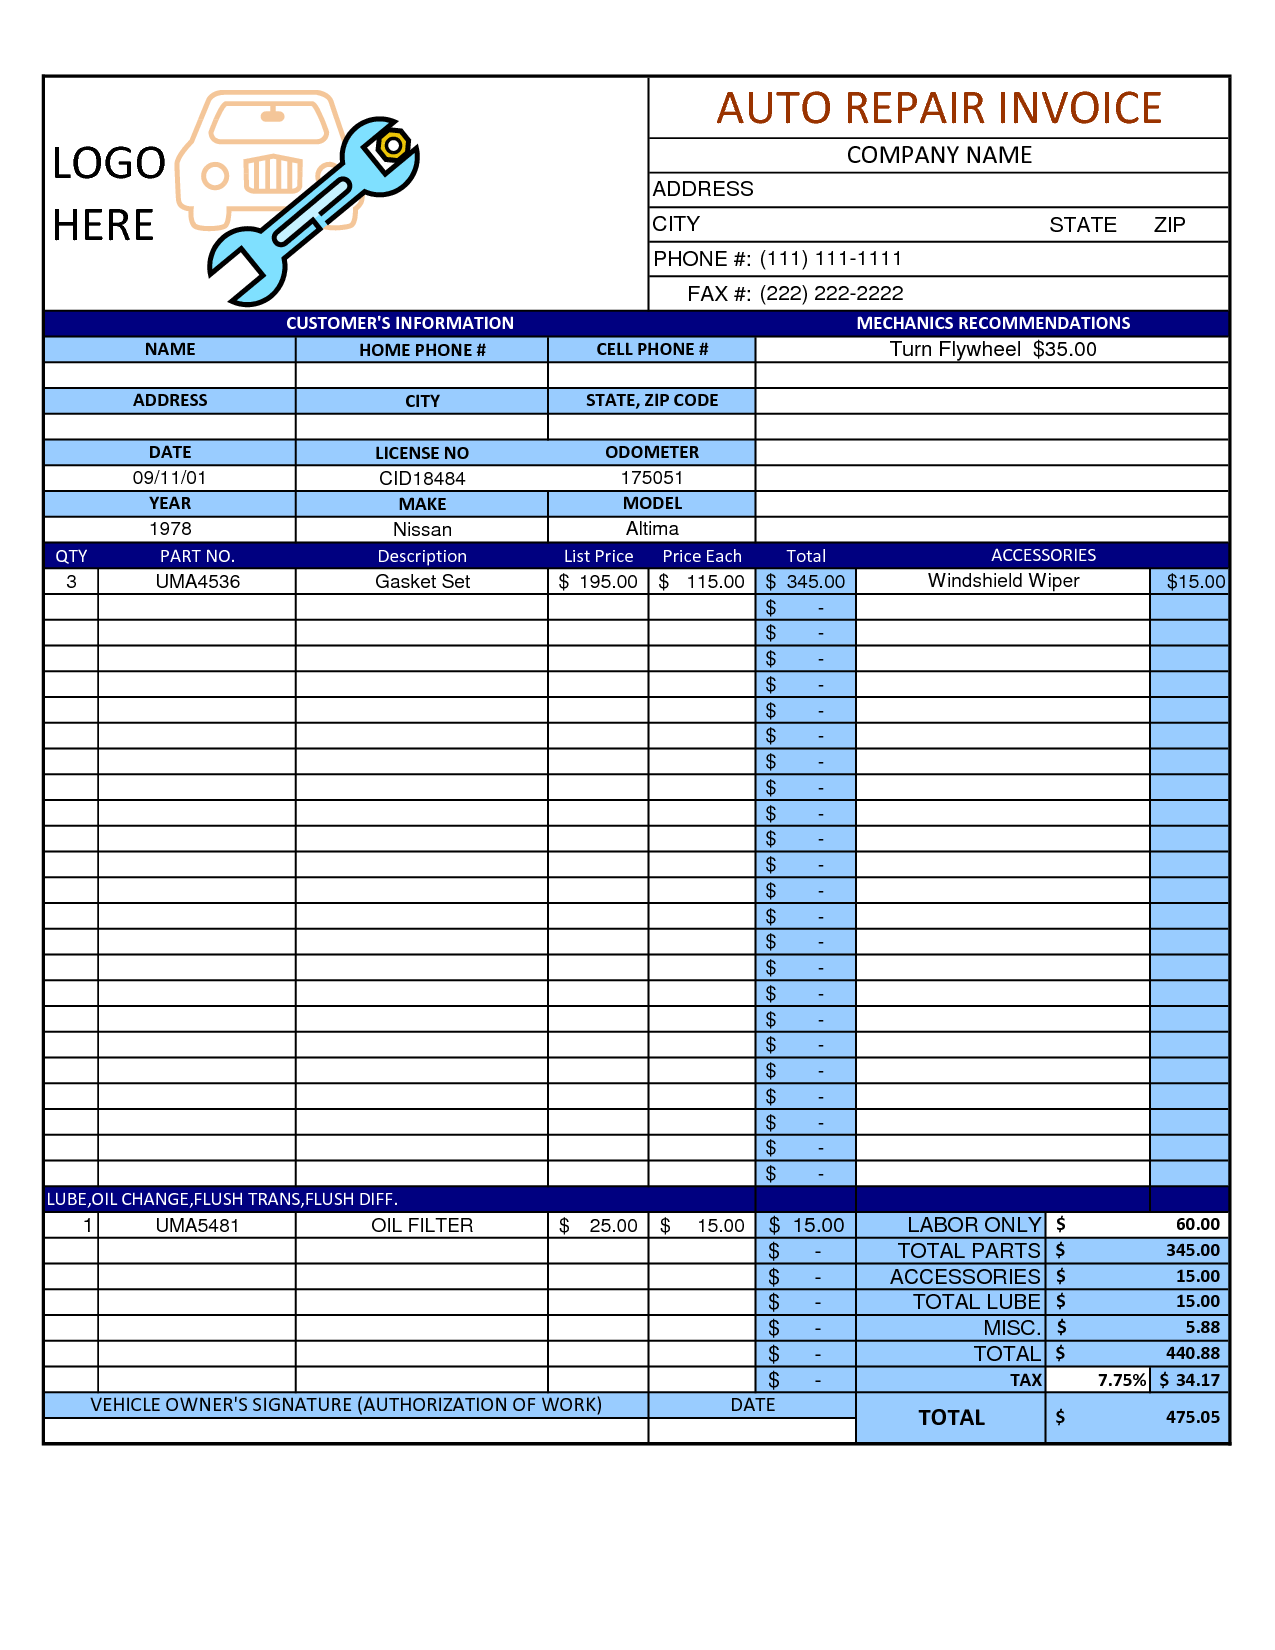 Florida Auto Repair Invoice Mechanic Shop Invoice Scope Of Work Template Pinteres